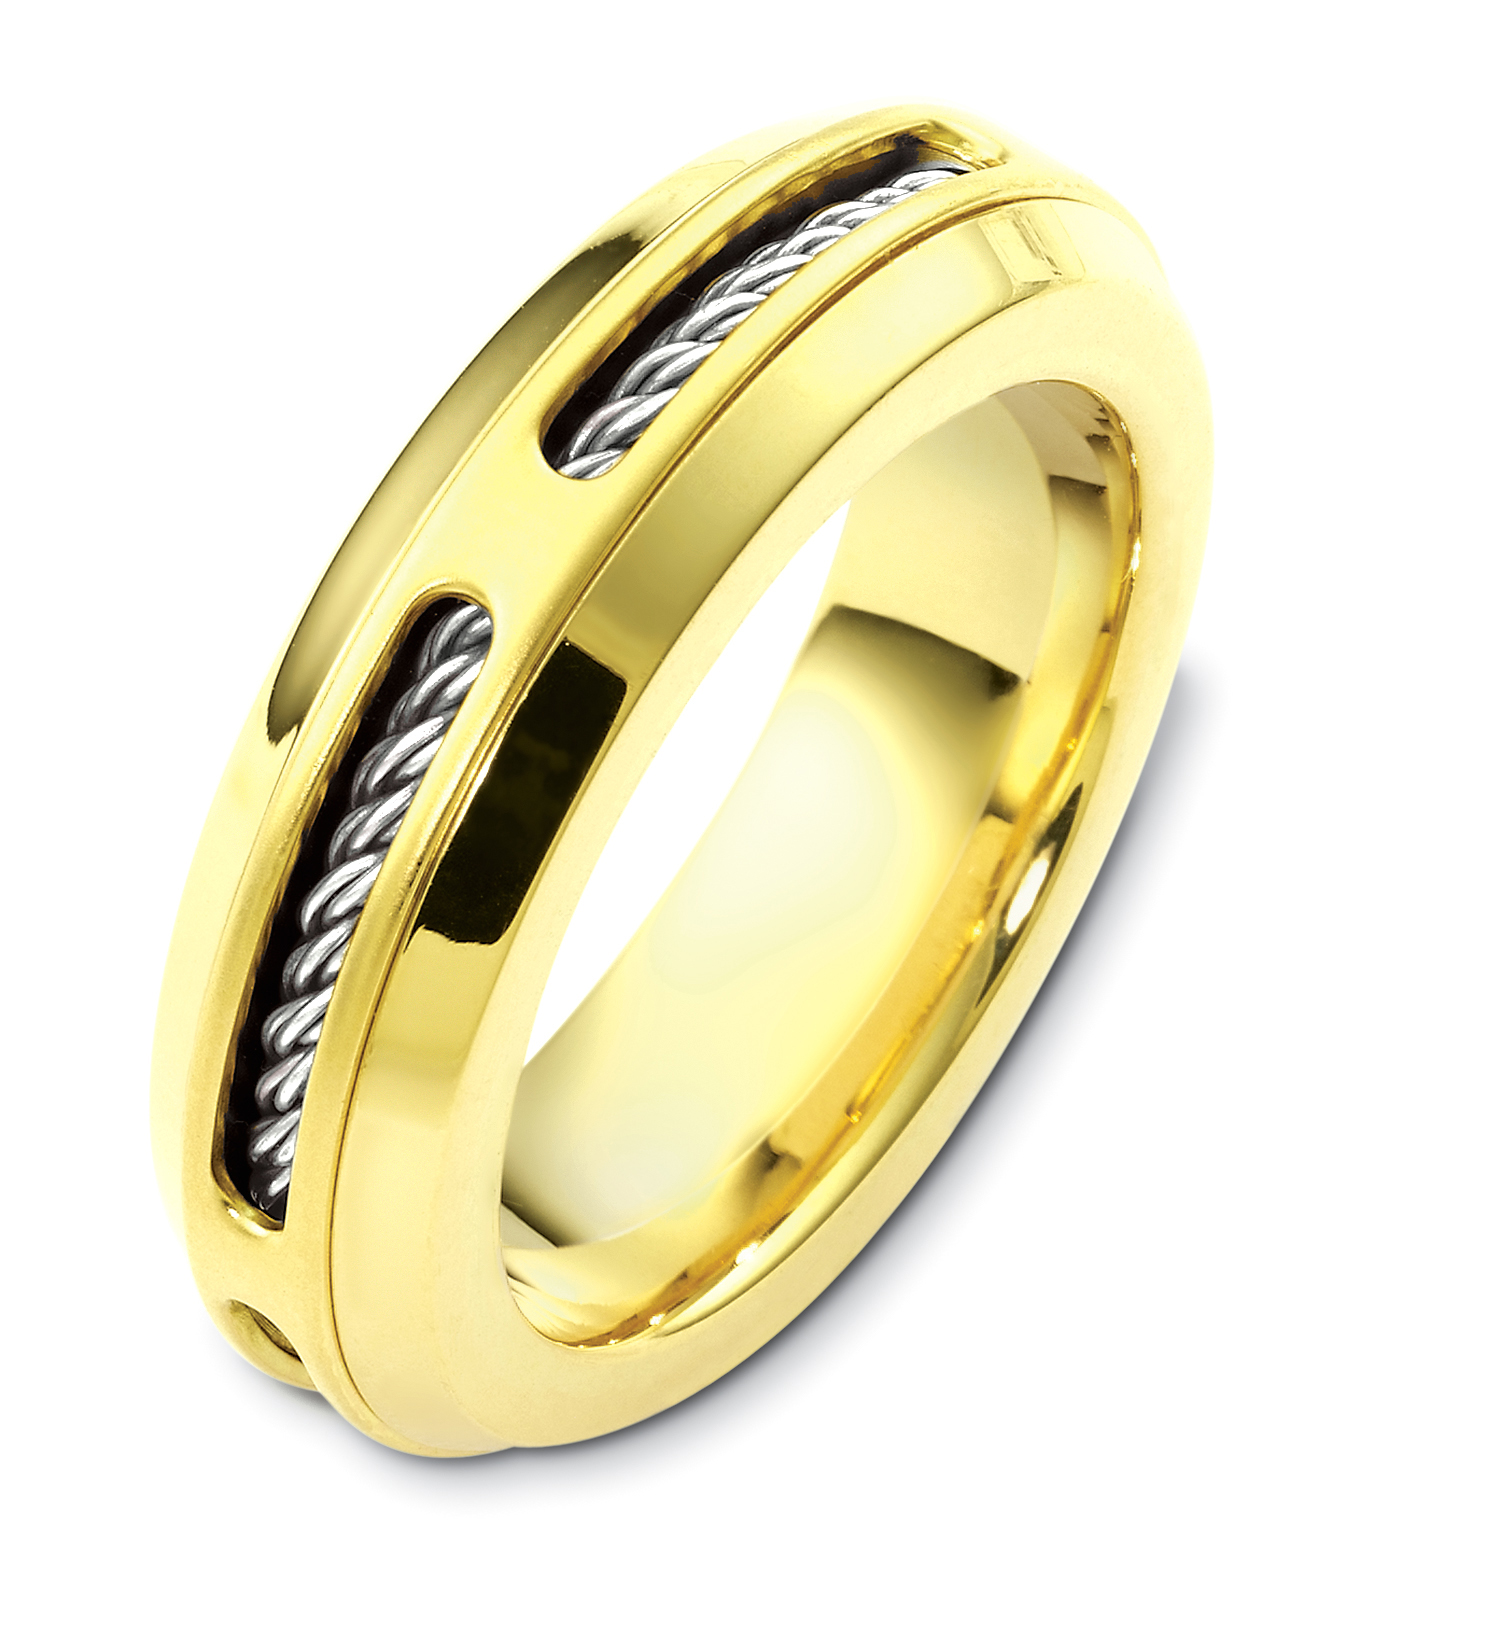 Details About 14k Twotone Cable Twist 7mm Wedding Band Sz 414: Twisted Two Tone Wedding Bands At Websimilar.org